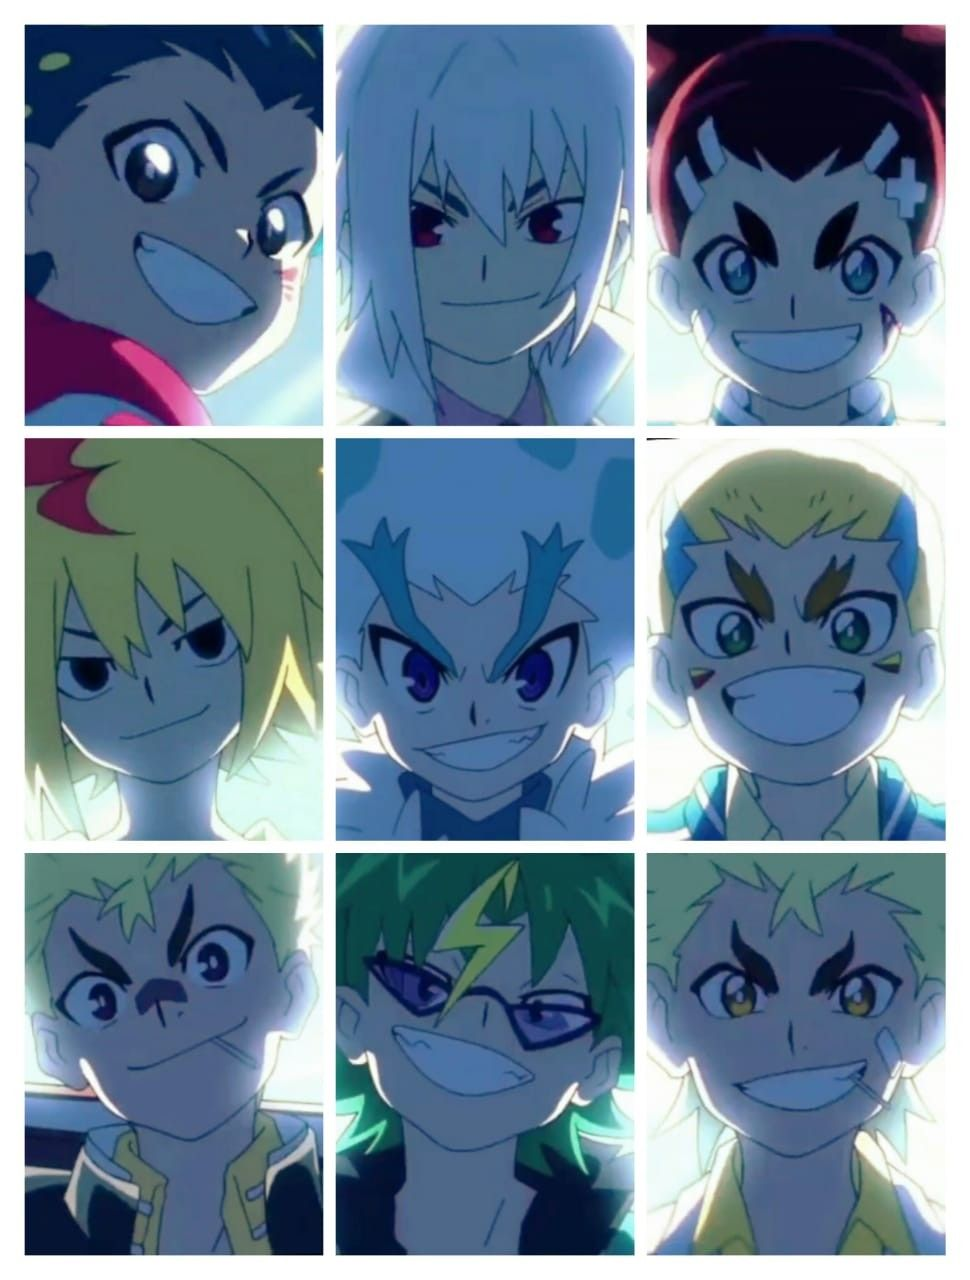 Legendary Bladers In 2020 Anime Films Beyblade Characters Anime